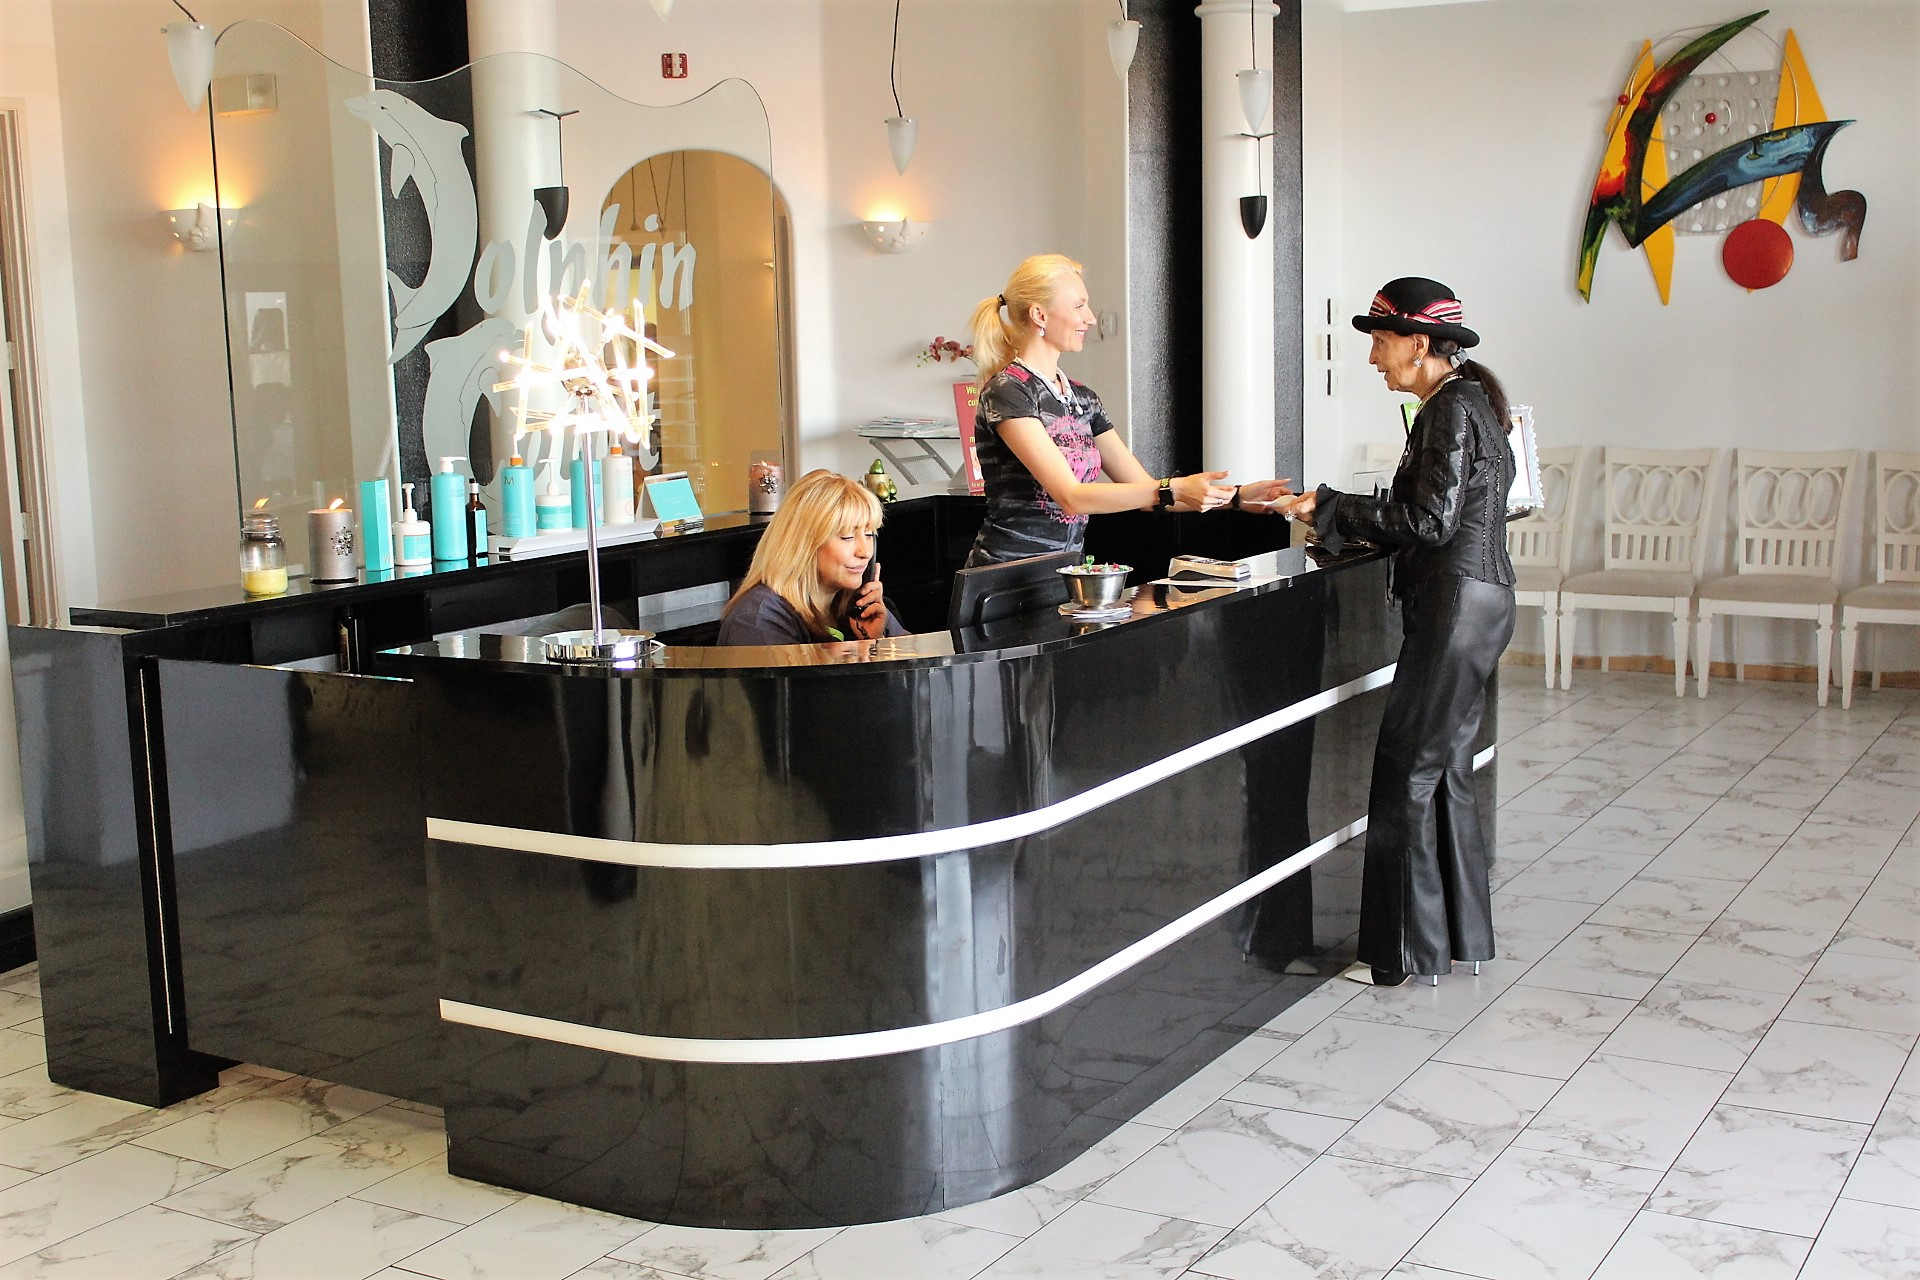 Dolphin Court Salon is looking for talented individuals to join our team!